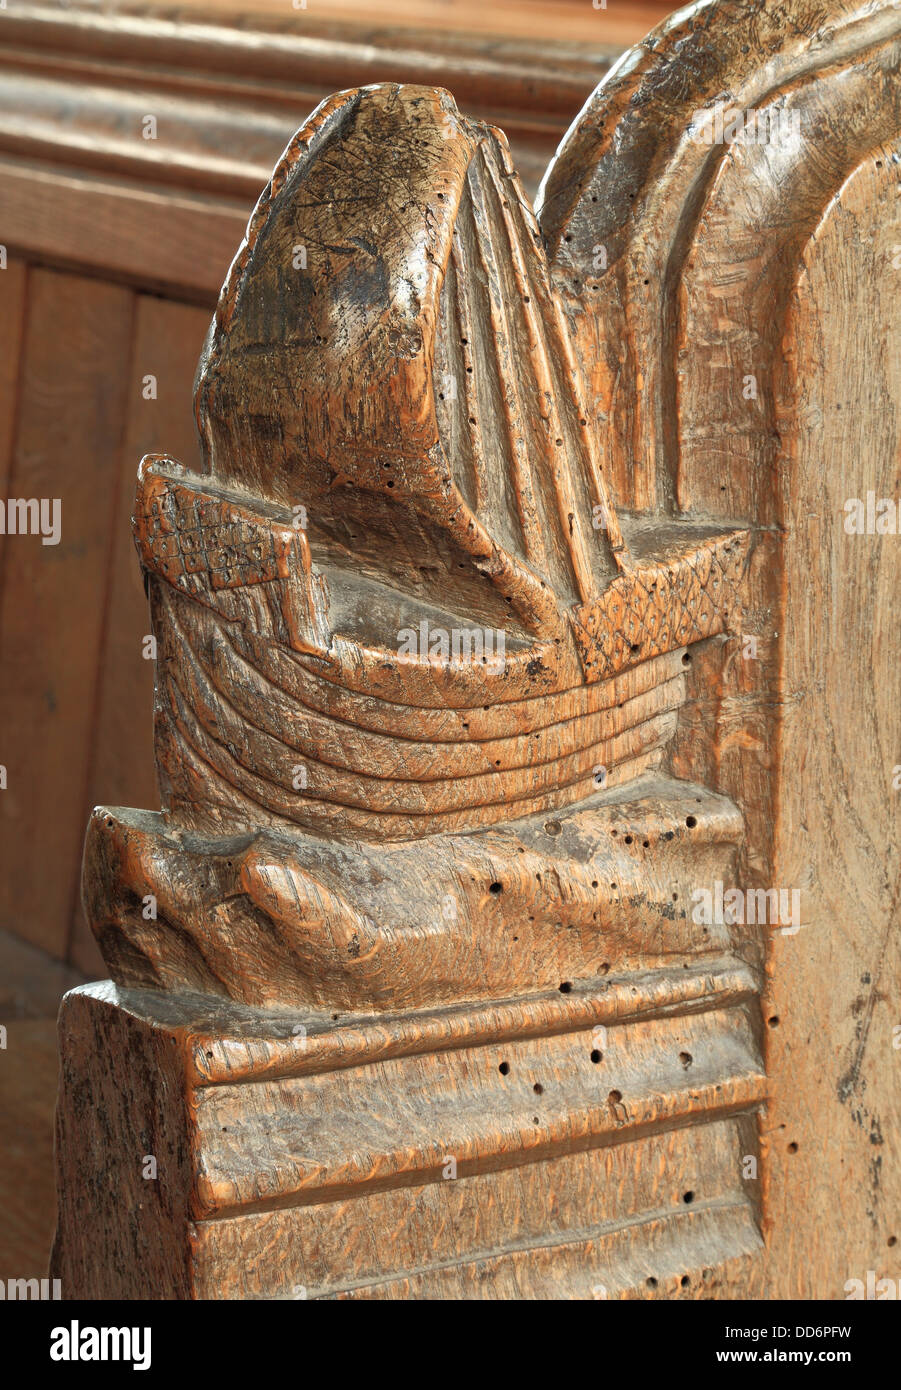 Medieval bench end, sailing ship, Thornham, Norfolk, 15th century wood carving, England UK, wood carving benchends - Stock Image